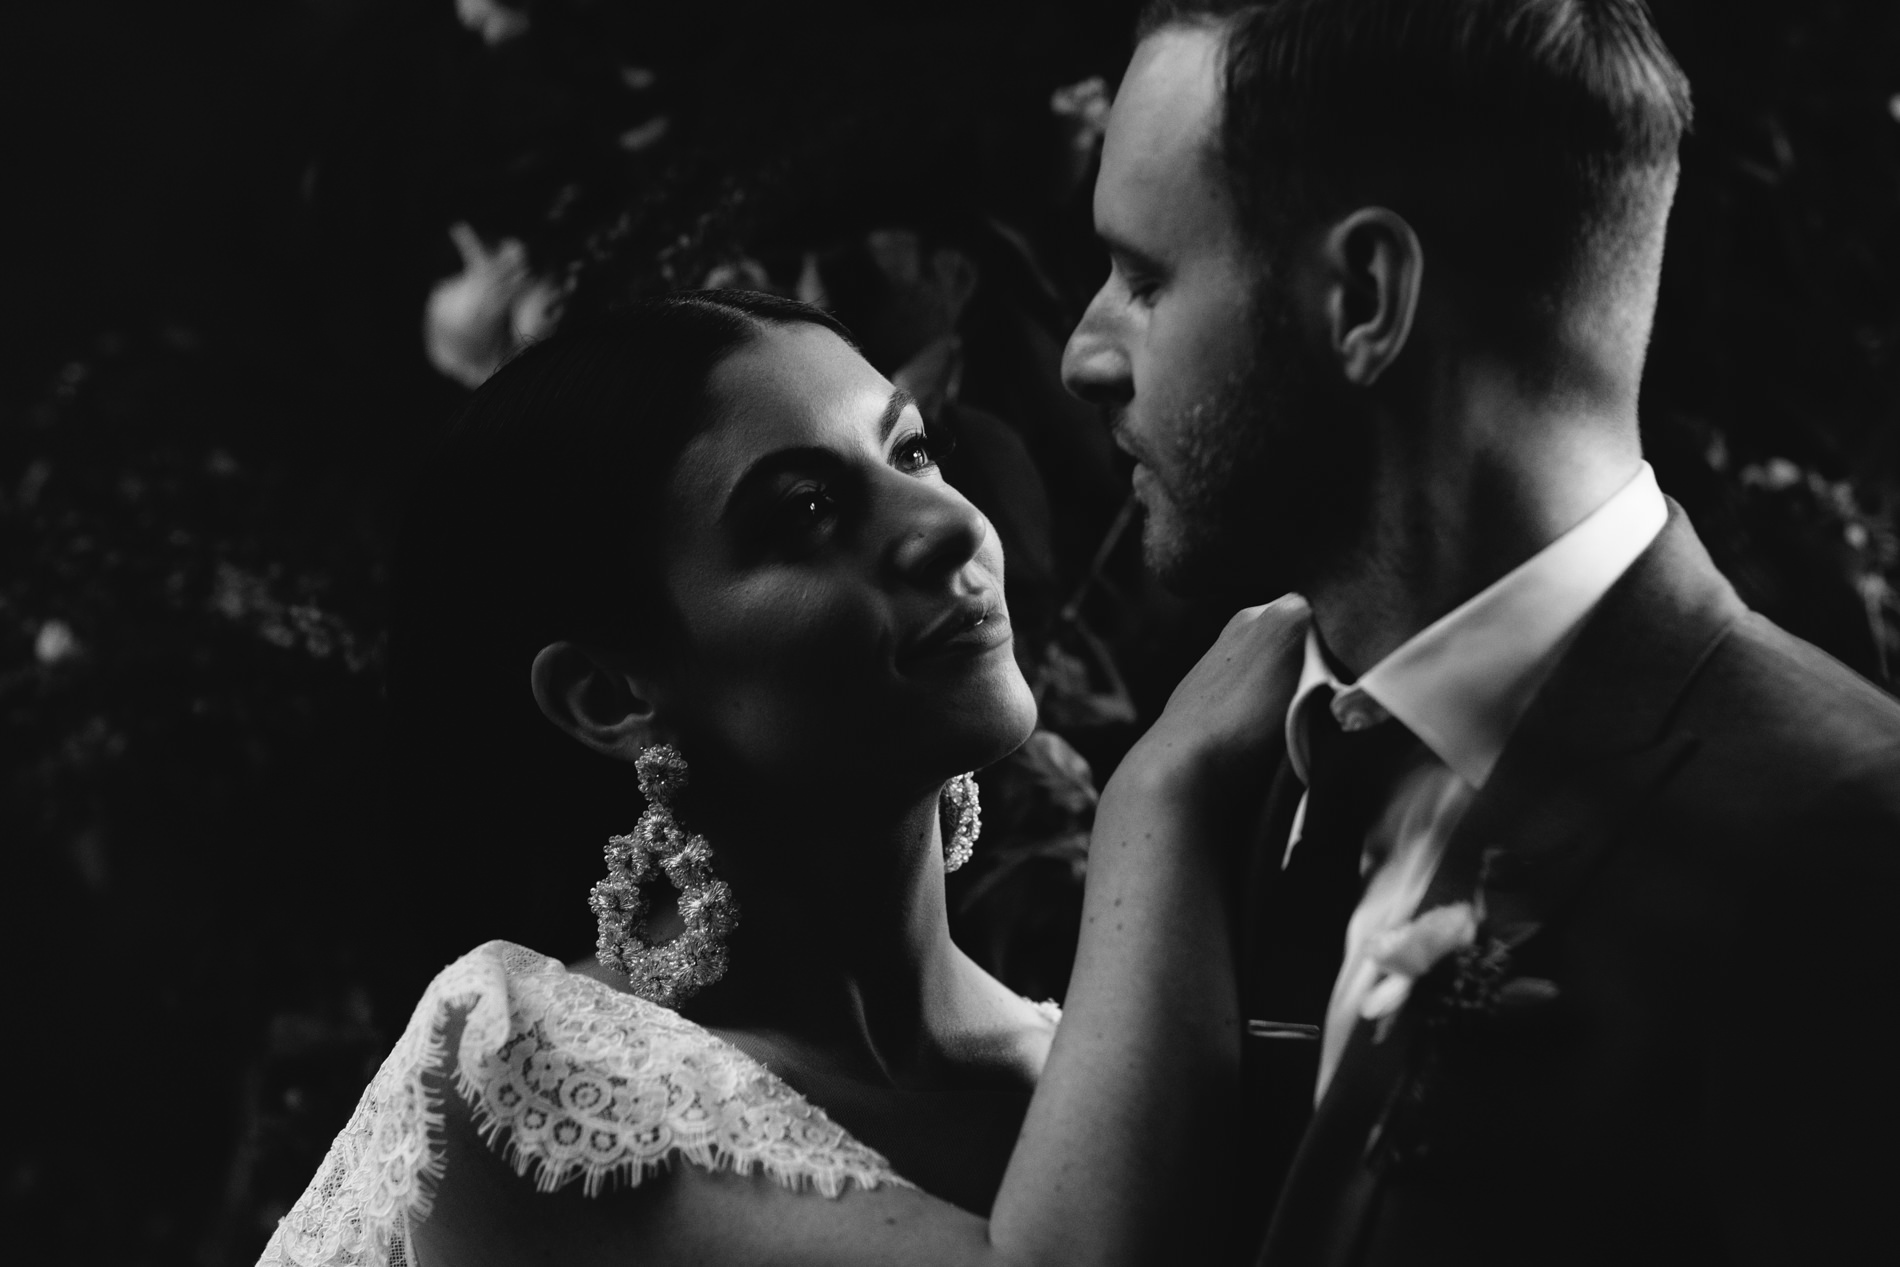 Bride and Groom staring at each other in dark dramatic lighting